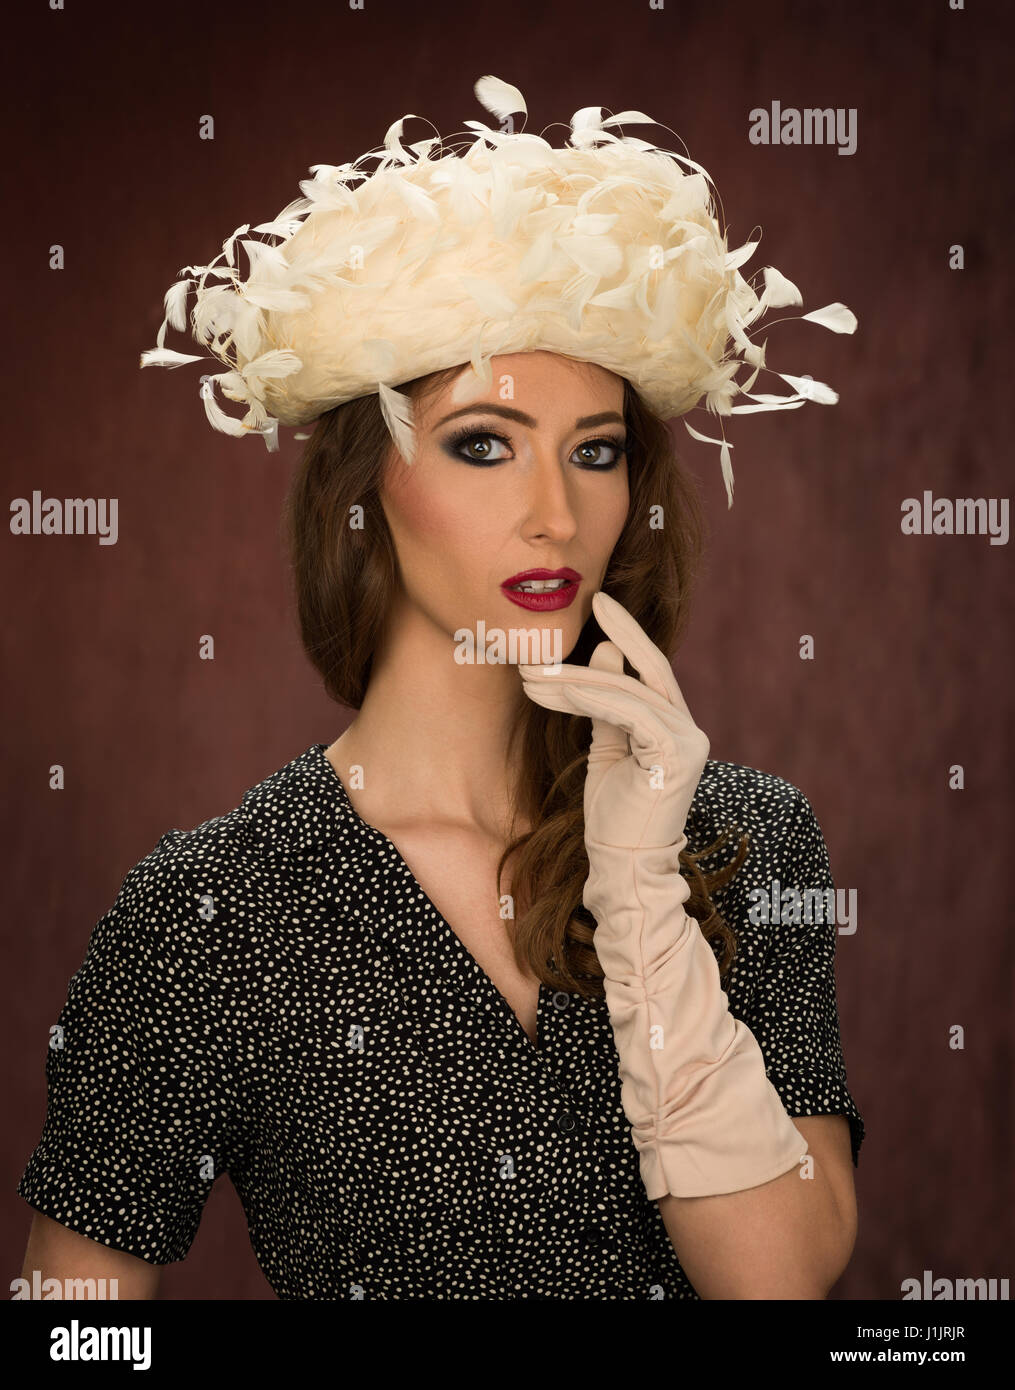 Young brunette model in a vintage white feathered hat - Stock Image